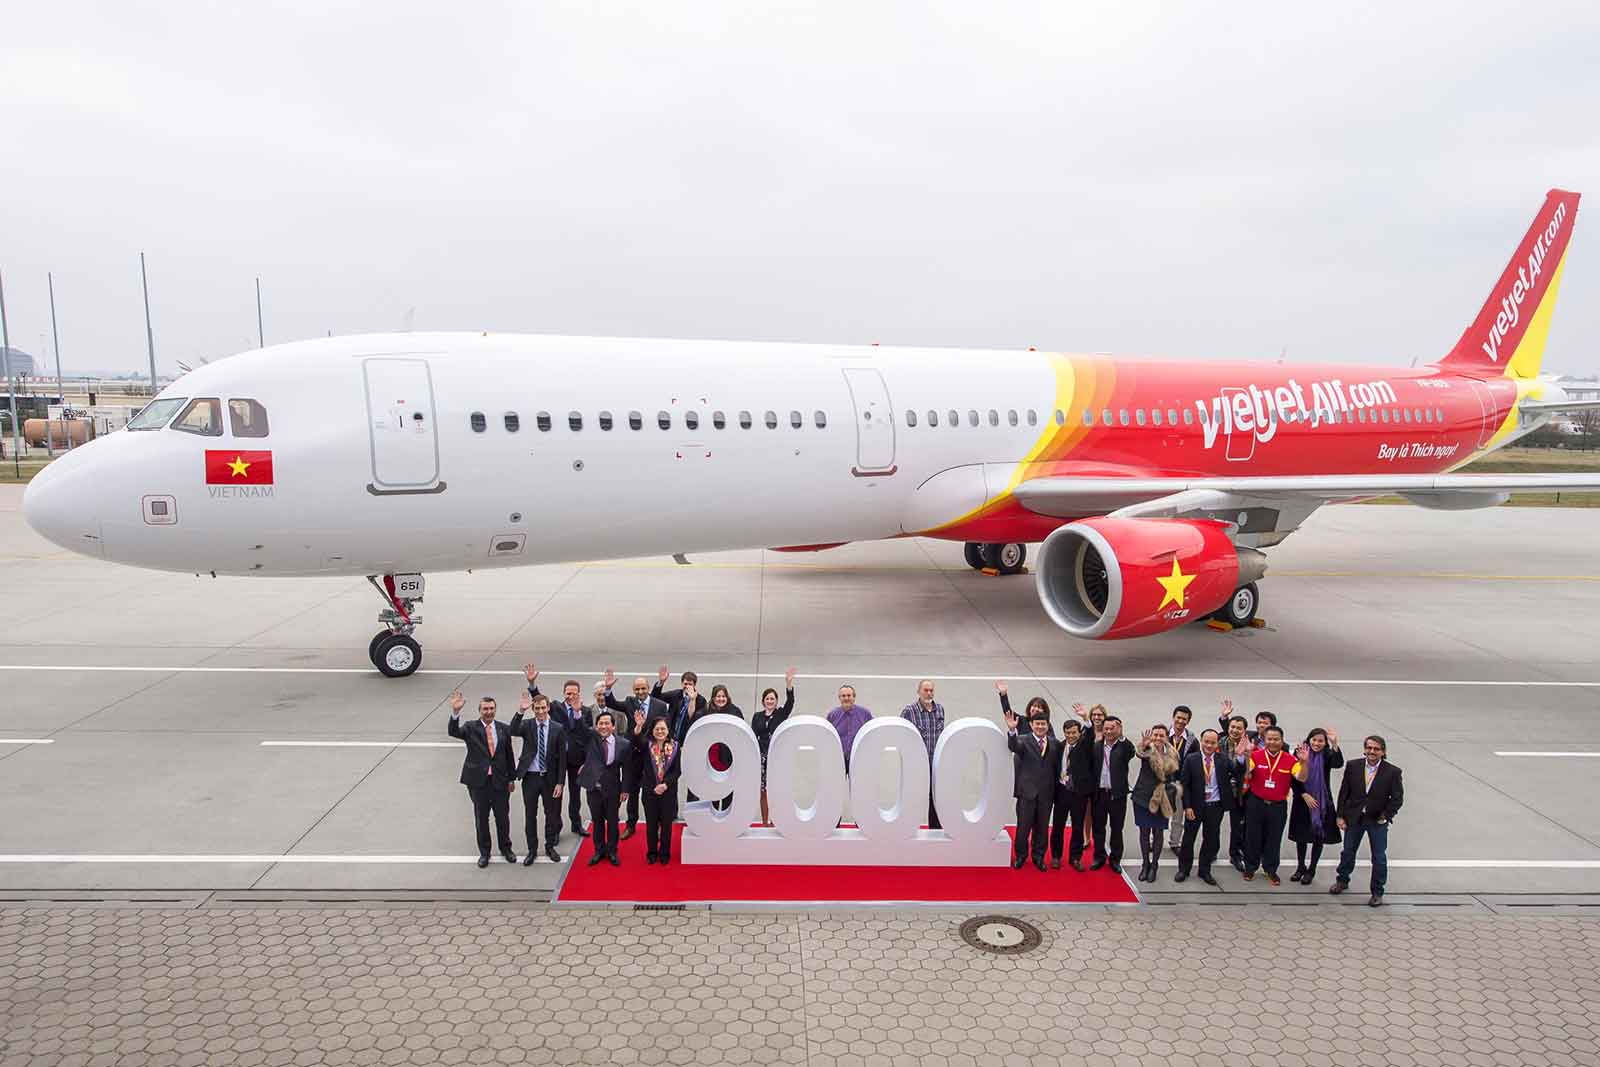 Airbus delivered 9000th aircraft - Celebrations with VietJetAir Their first A321 - Delivery ceremony in Hamburg